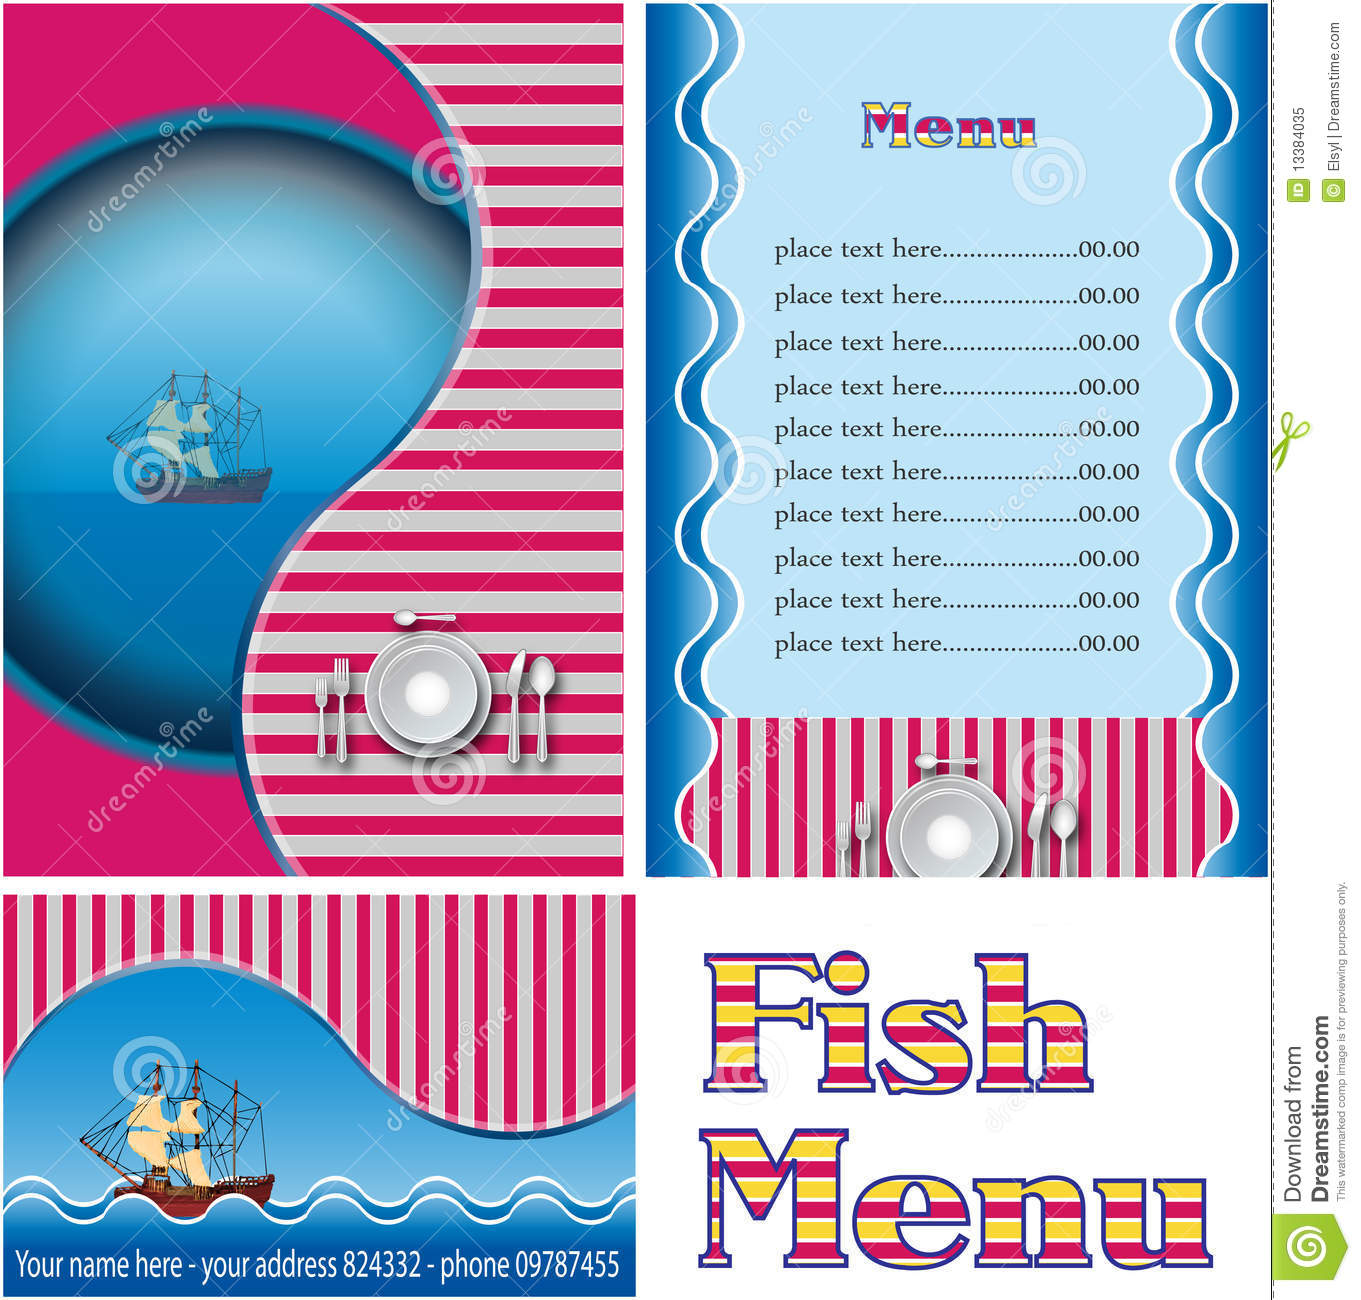 Fish restaurant menu royalty free stock photo image for Max fish menu